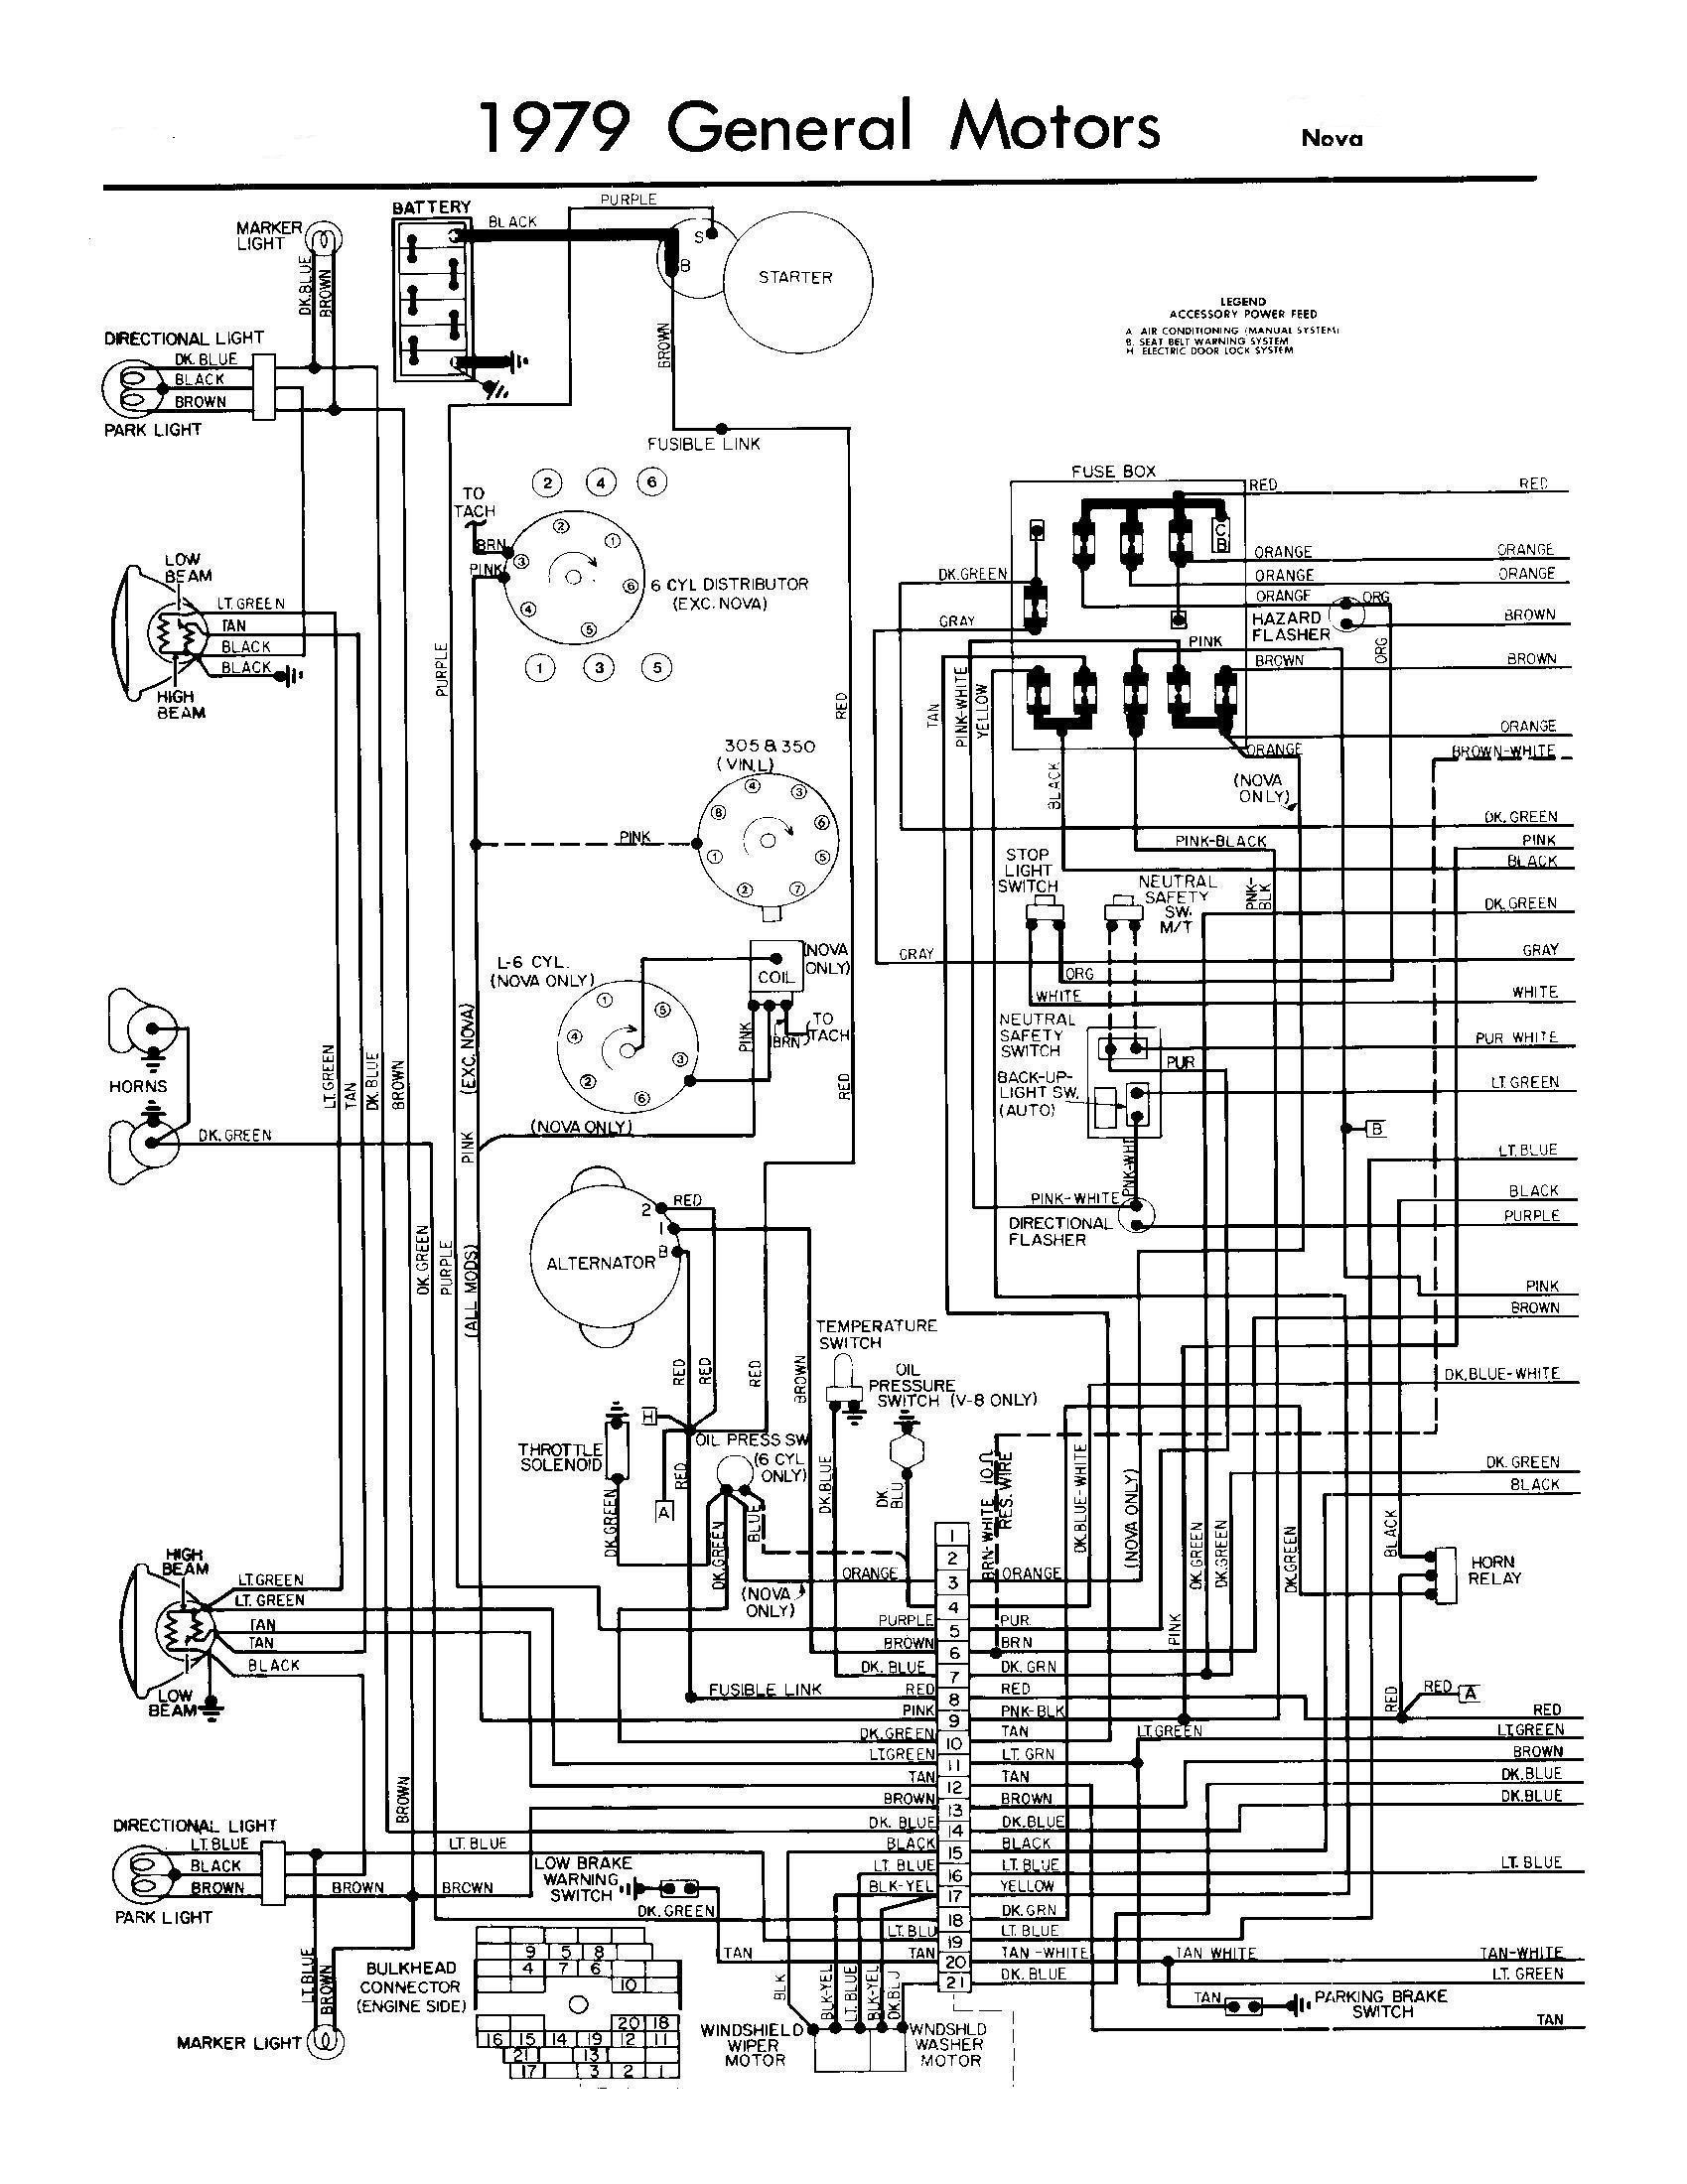 1972 camaro wiring harness free download wiring diagrams pictures rh sellfie co